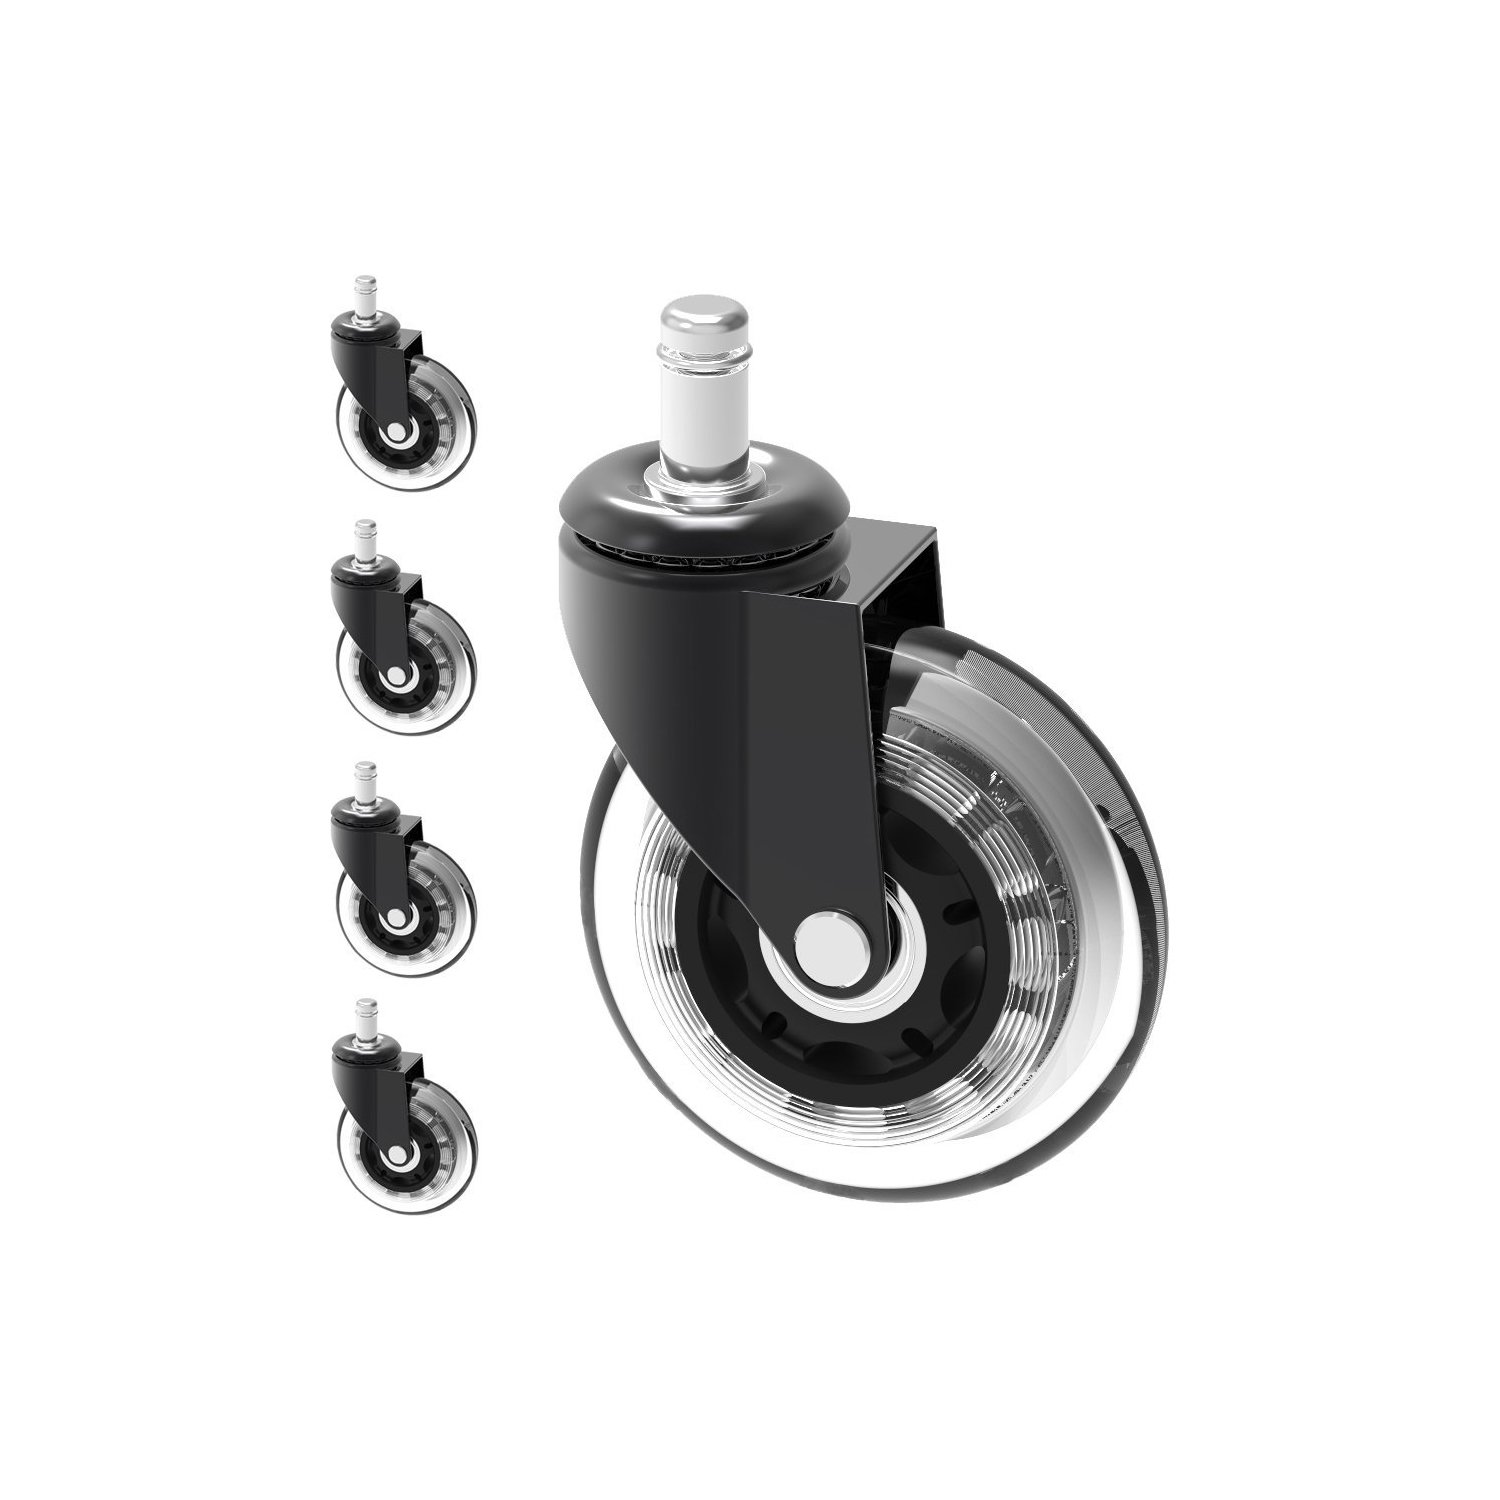 Optimum Orbis Office Chair Caster Wheels Heavy Duty Safe for All Floors Including Hardwood Perfect Replacement for Desk Floor Mat Rollerblade Style 3'' (Set of 5)